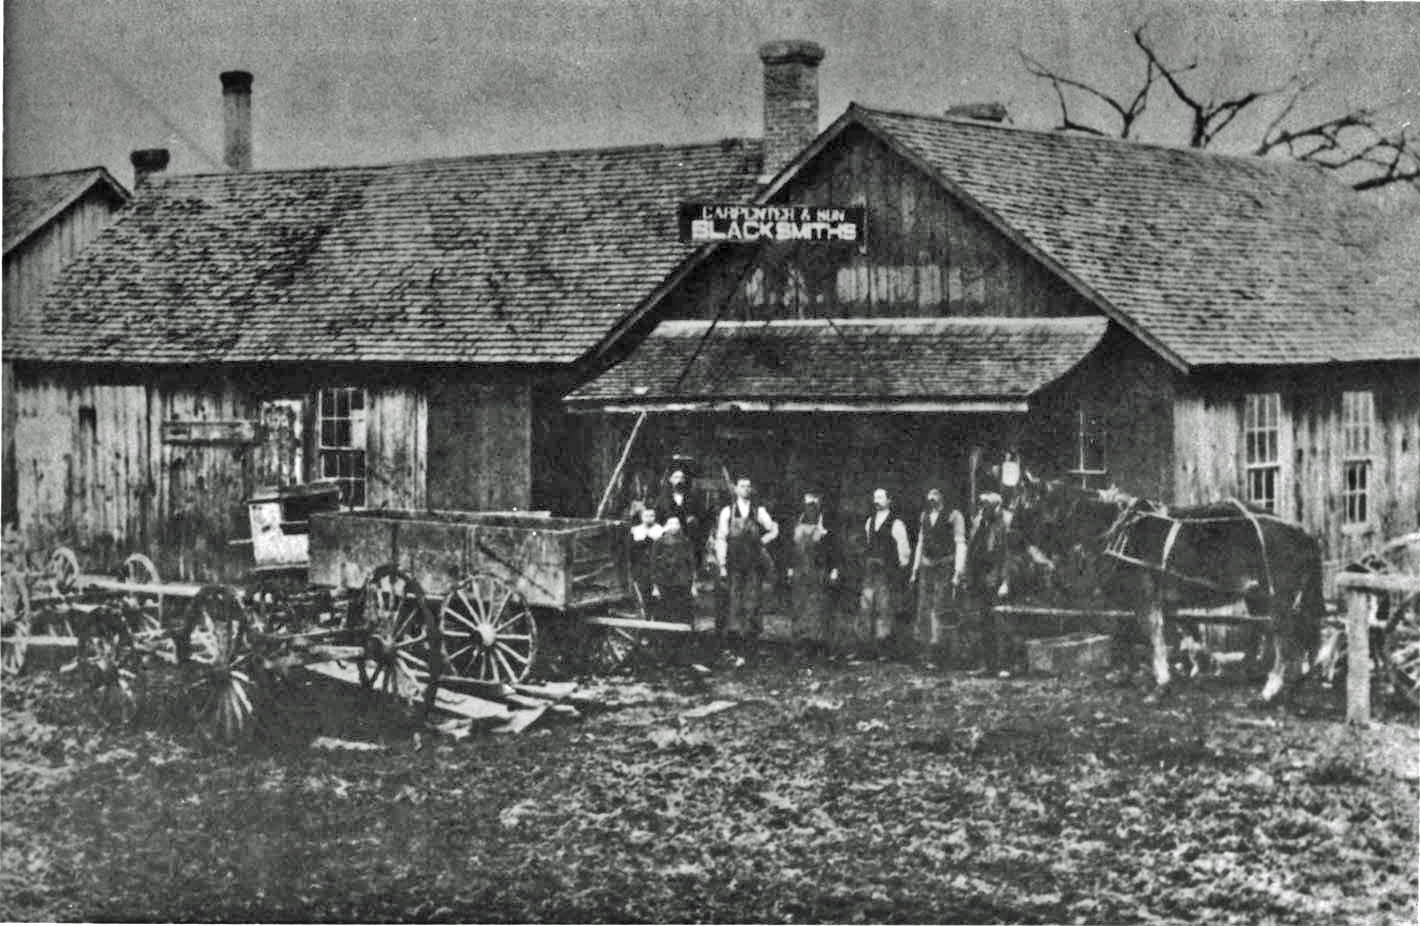 The Ralph H. Carpenter Body Company was founded in Mitchell, Indiana, in 1919 by blacksmith and wagon maker, Ralph Carpenter.